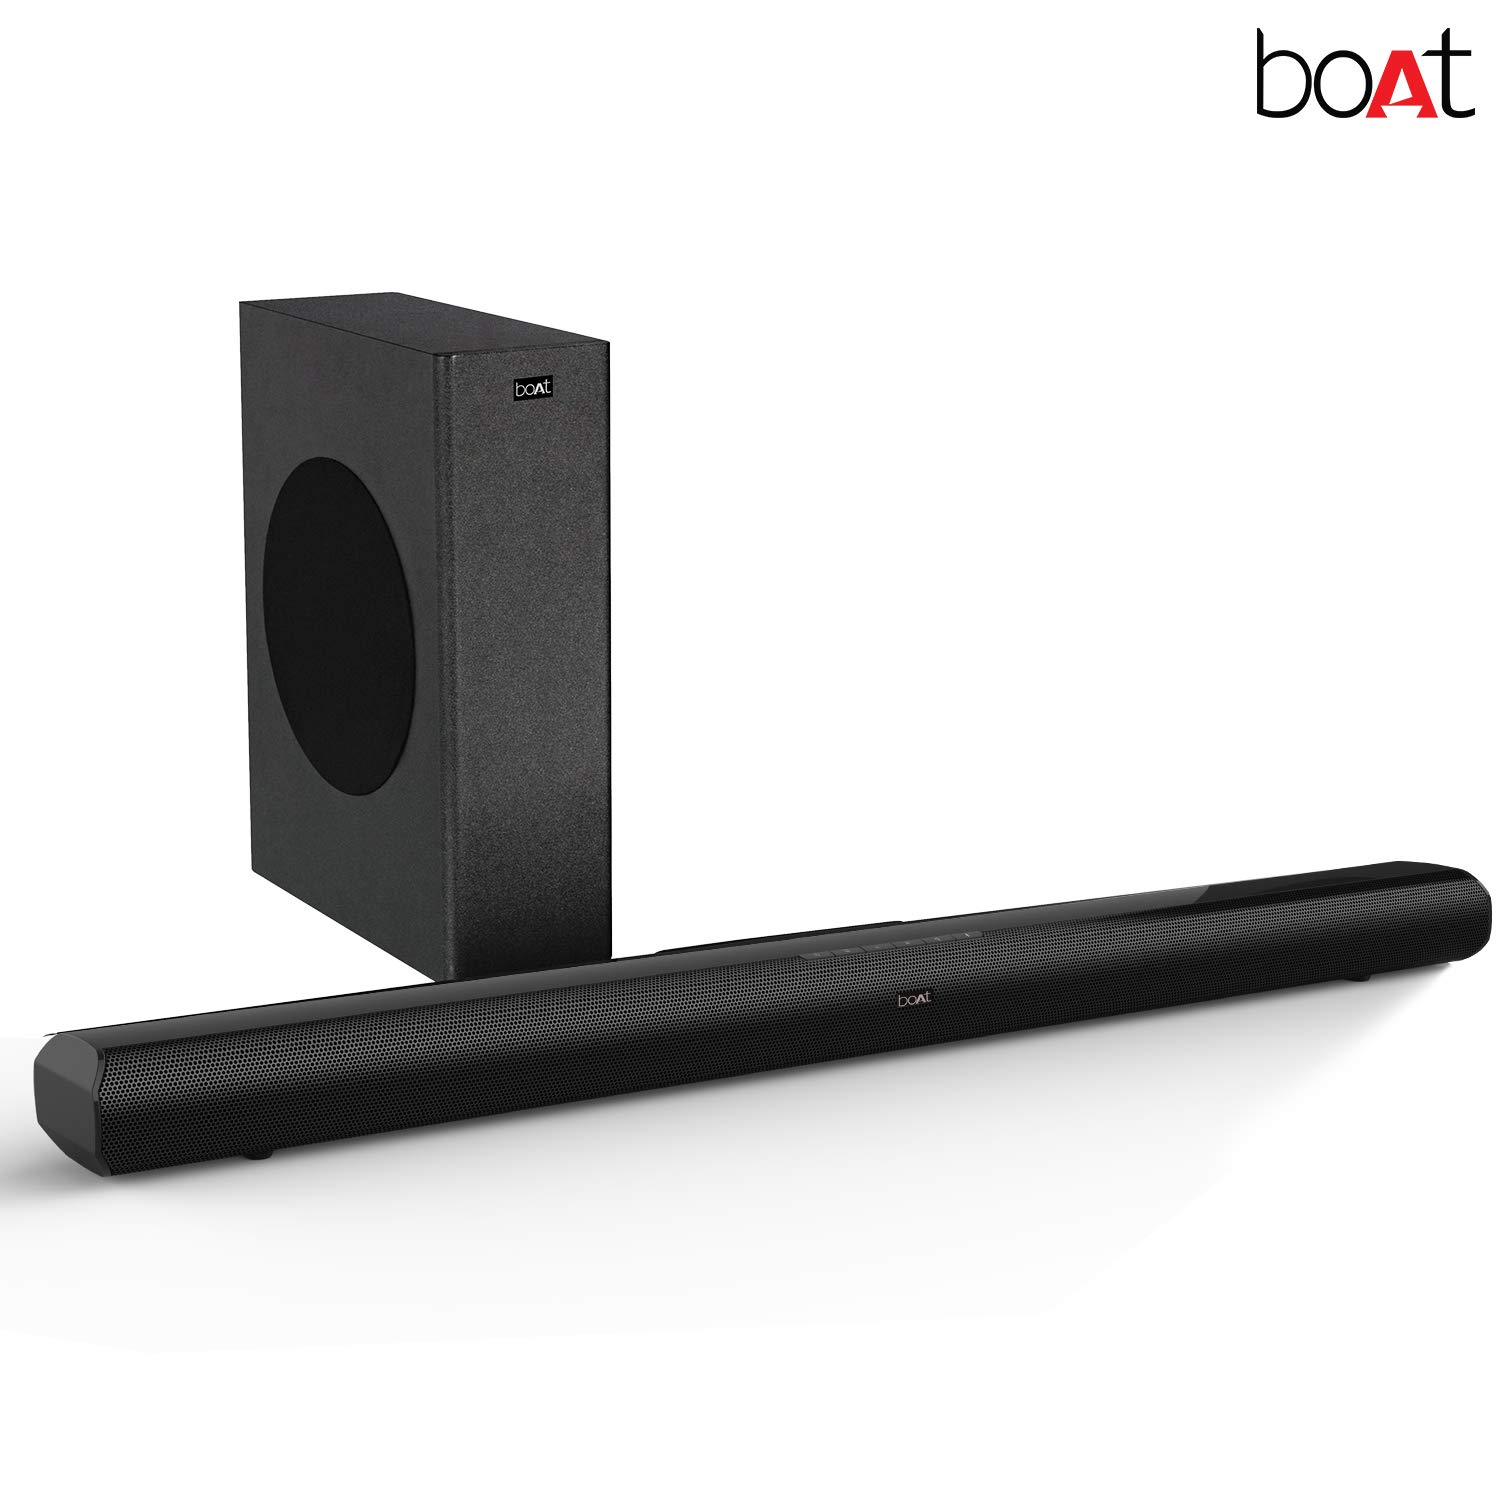 boAt Aavante 3000 Soundbar Speaker with Wireless Subwoofer,